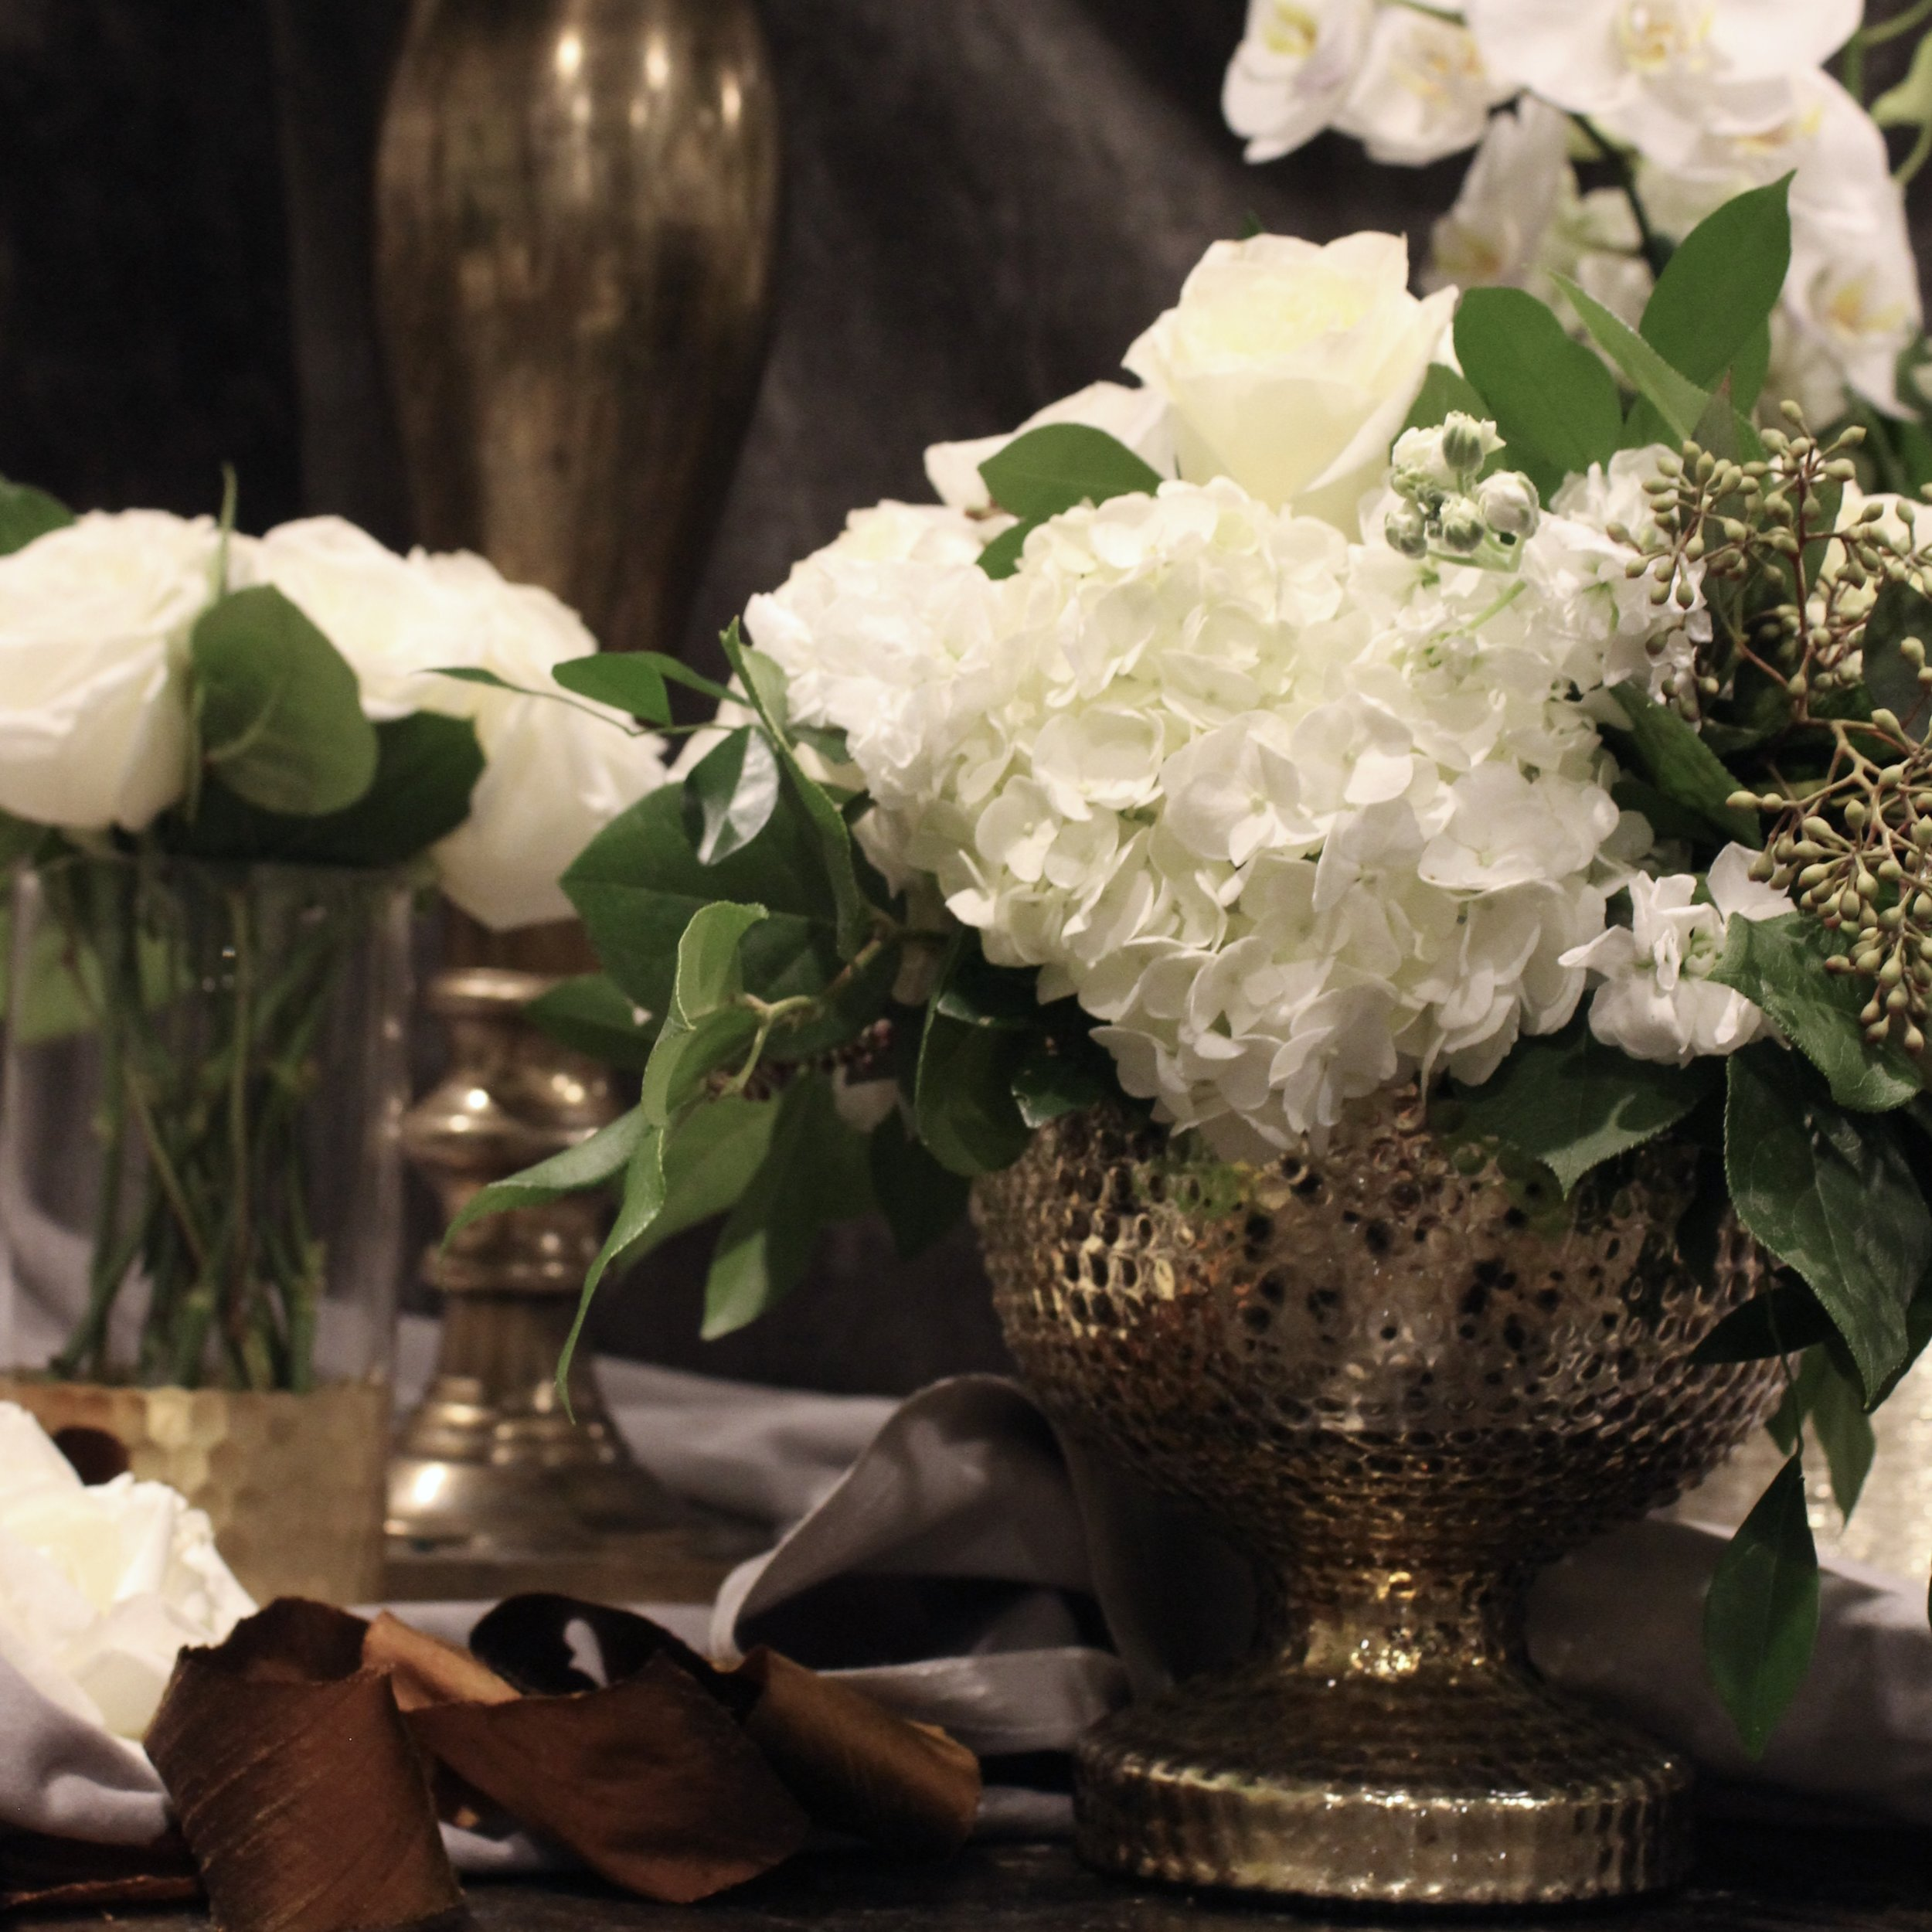 Green and white florals with vintage gold vessels